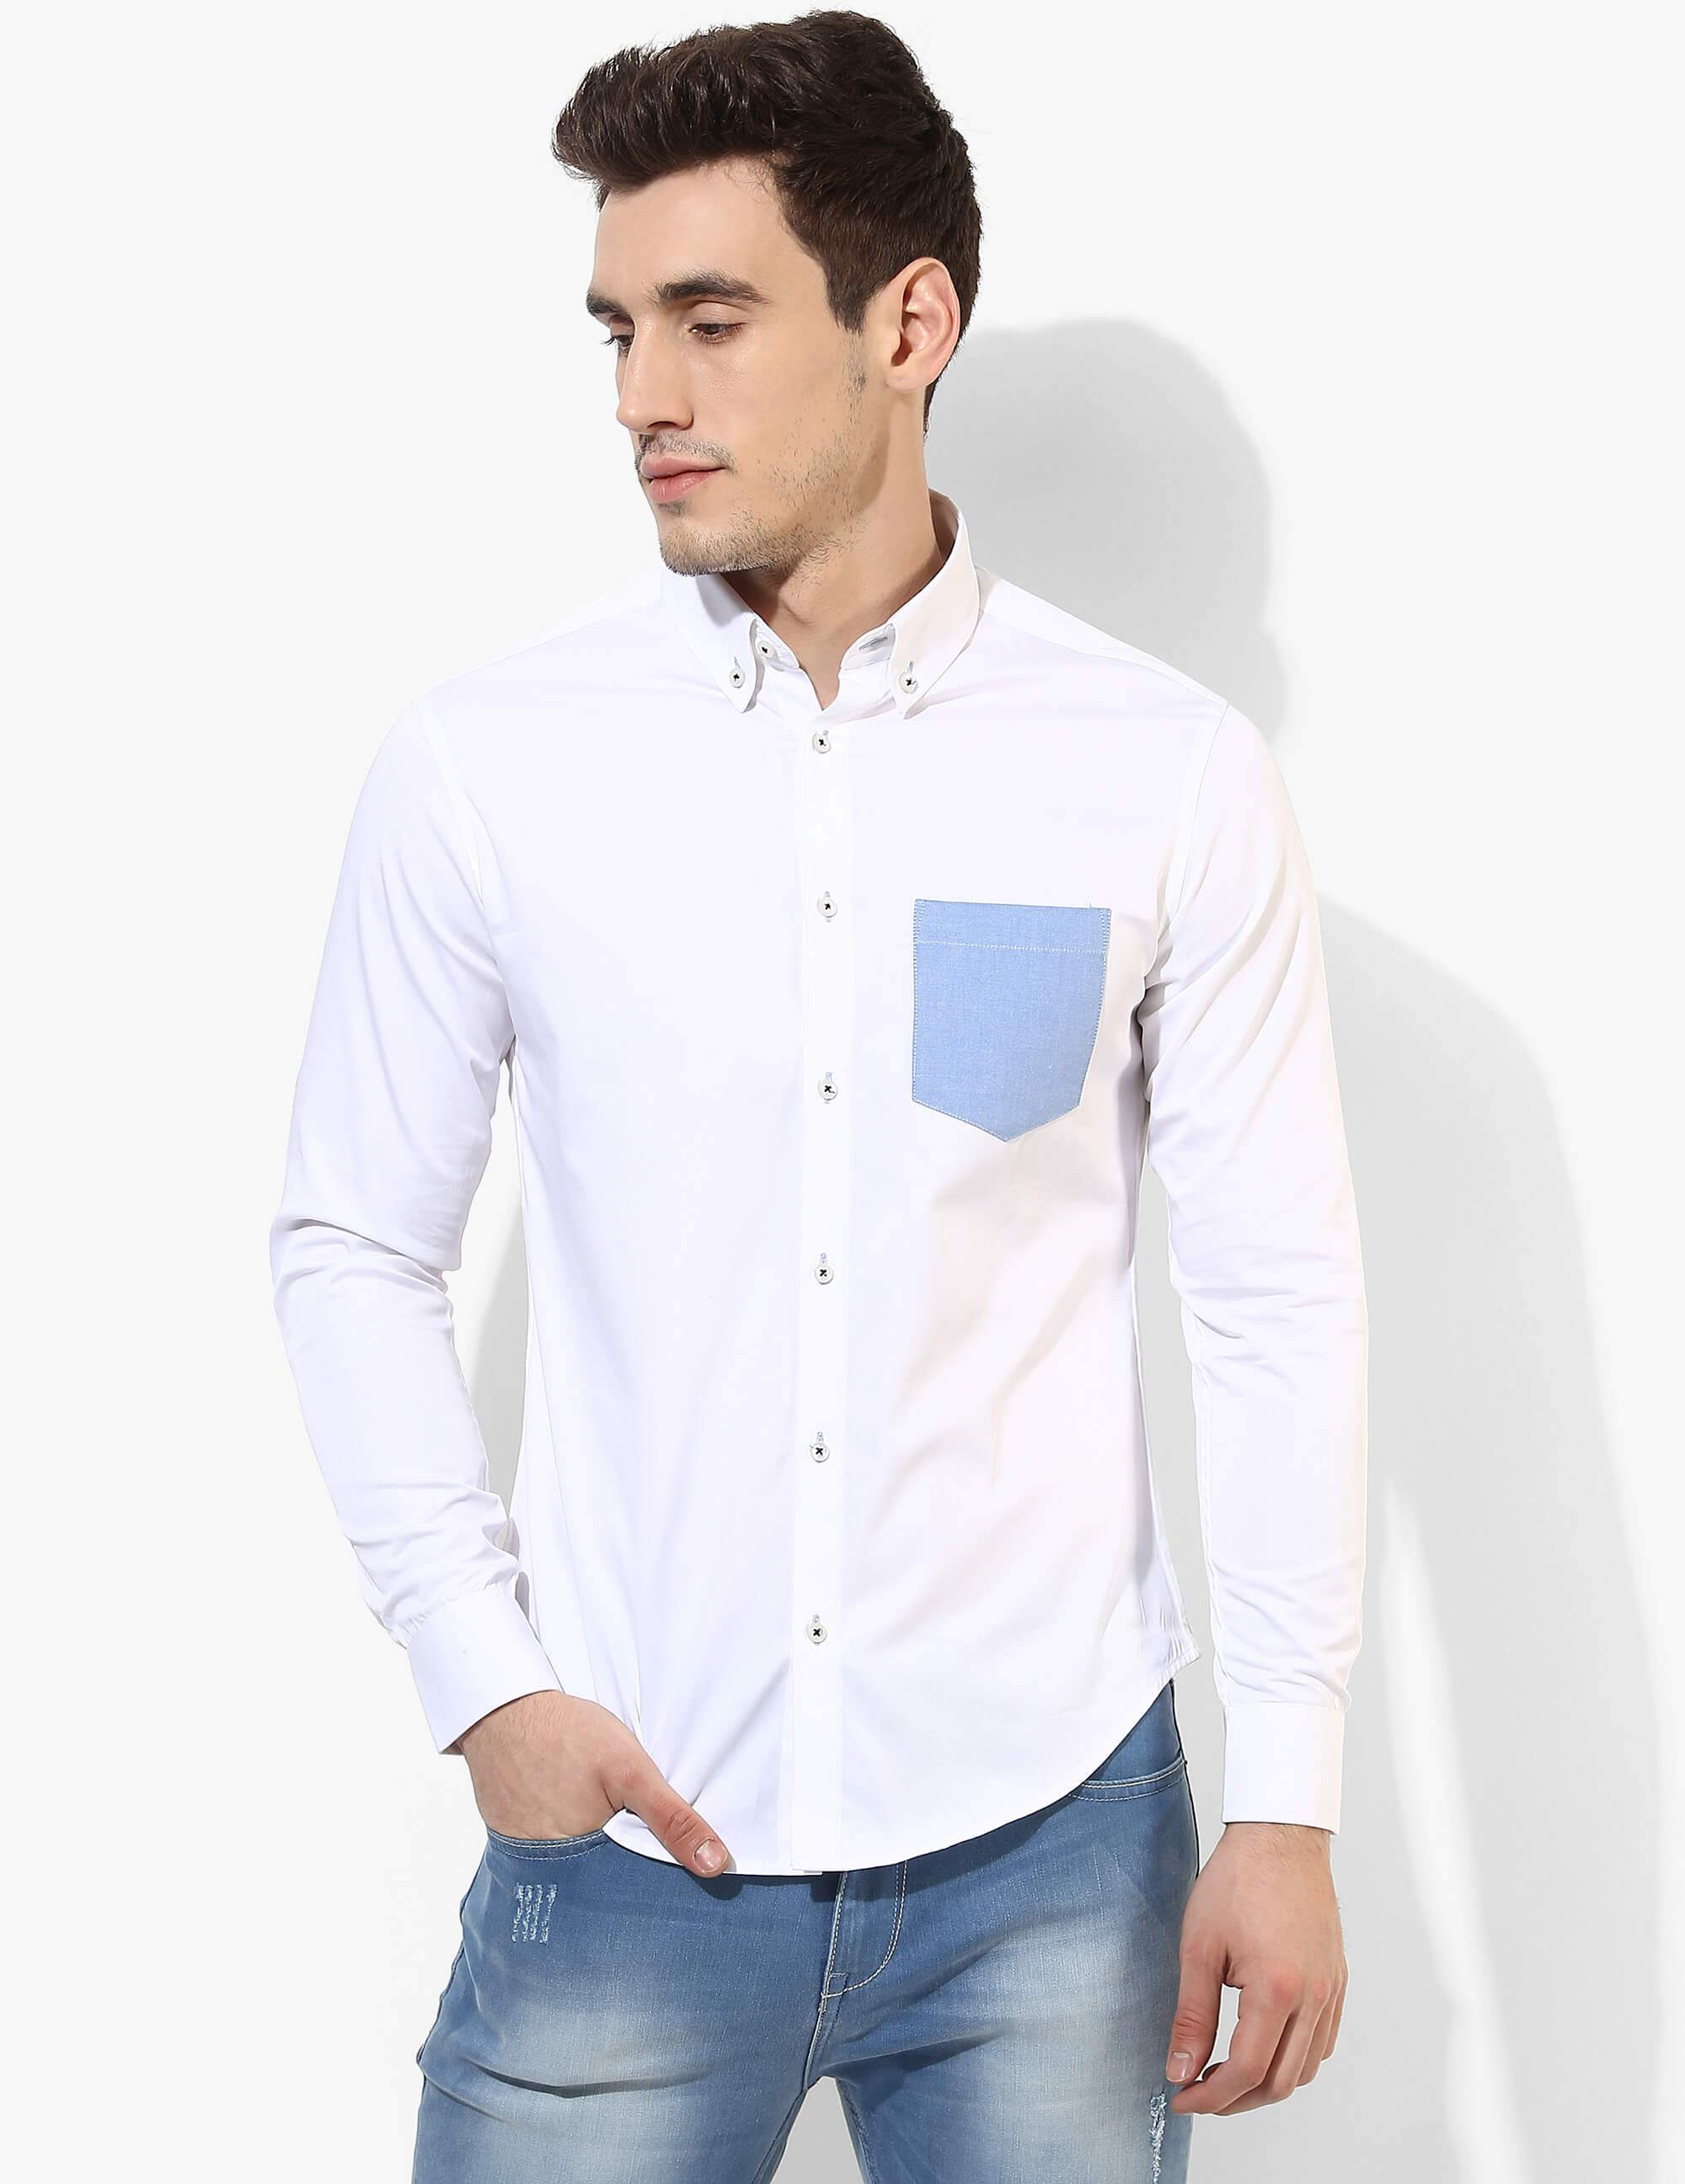 Sturdy White Solid Shirt